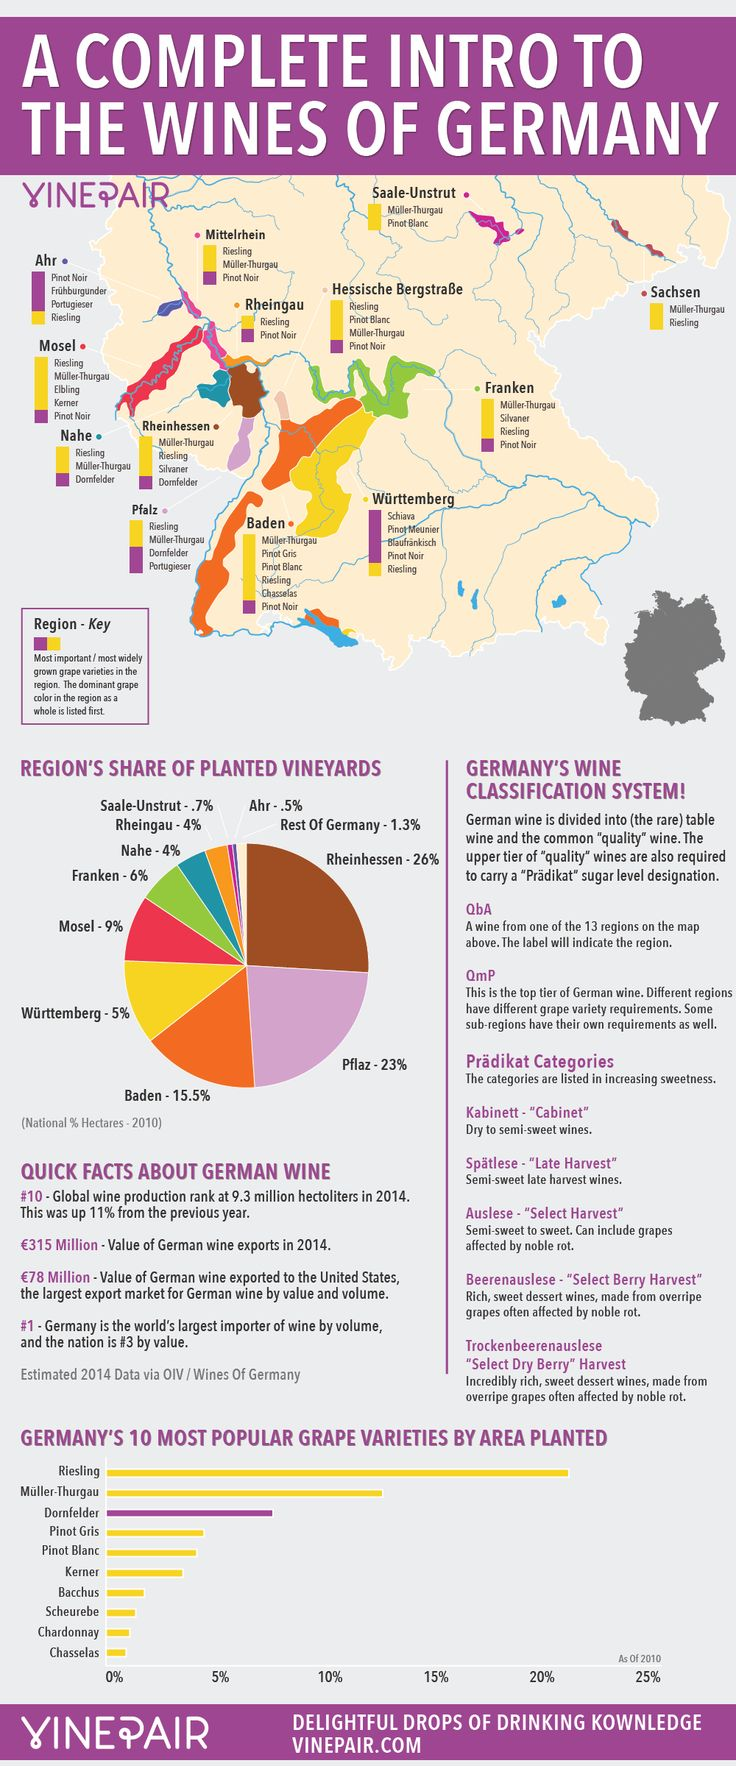 A Complete Introduction And Guide To The Wines Of Germany Including MAP! #wine #wineeducation #germany